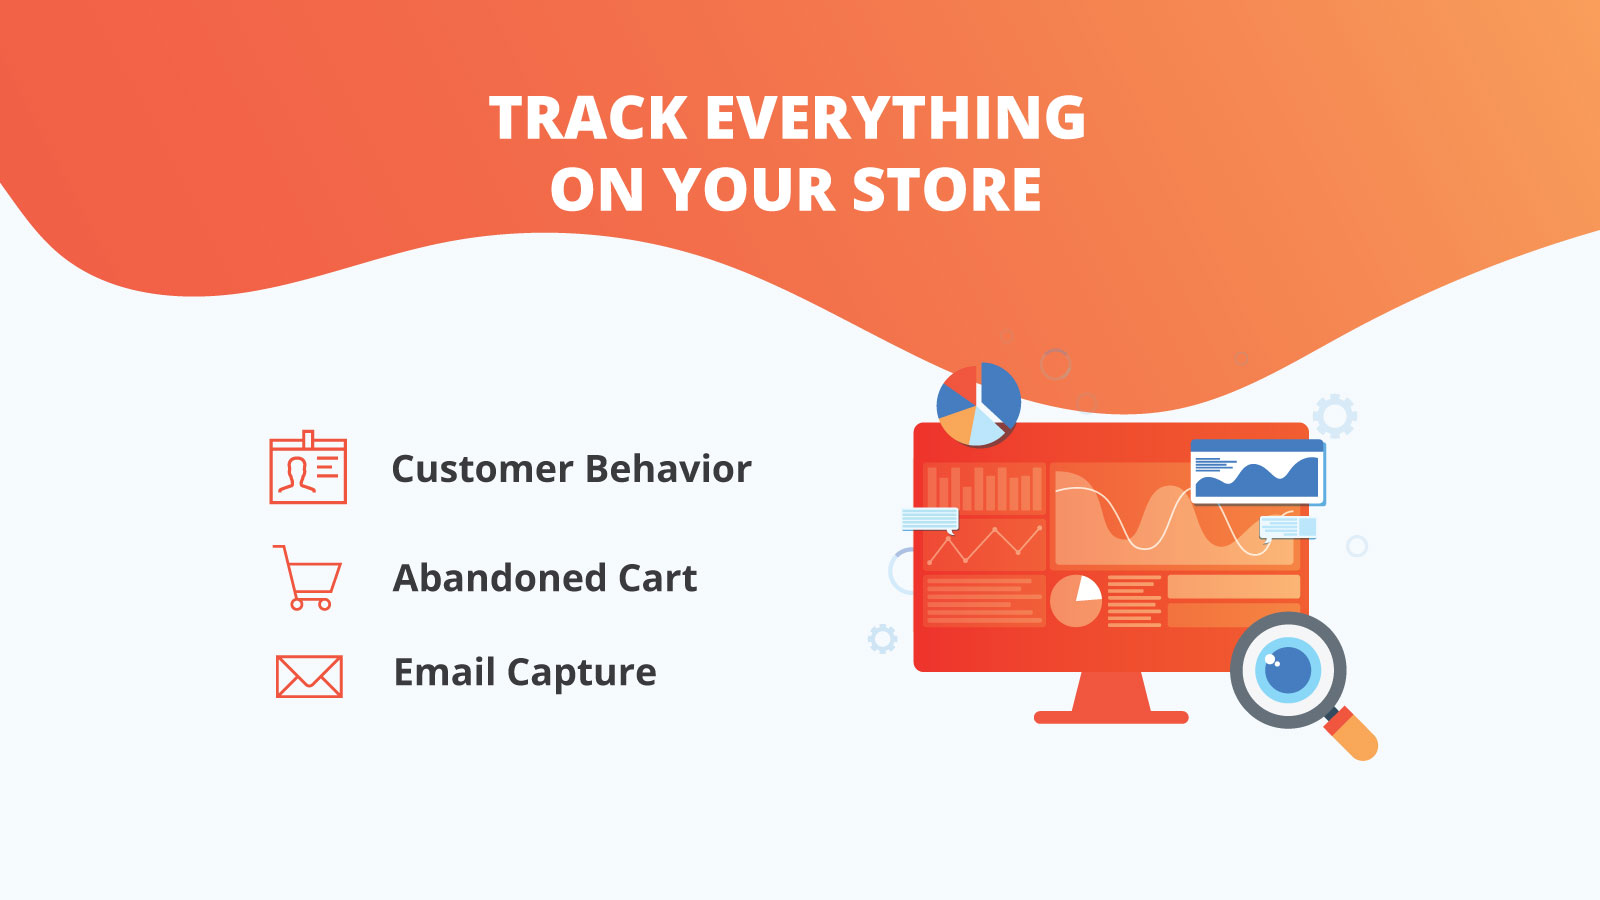 Track everything on your store